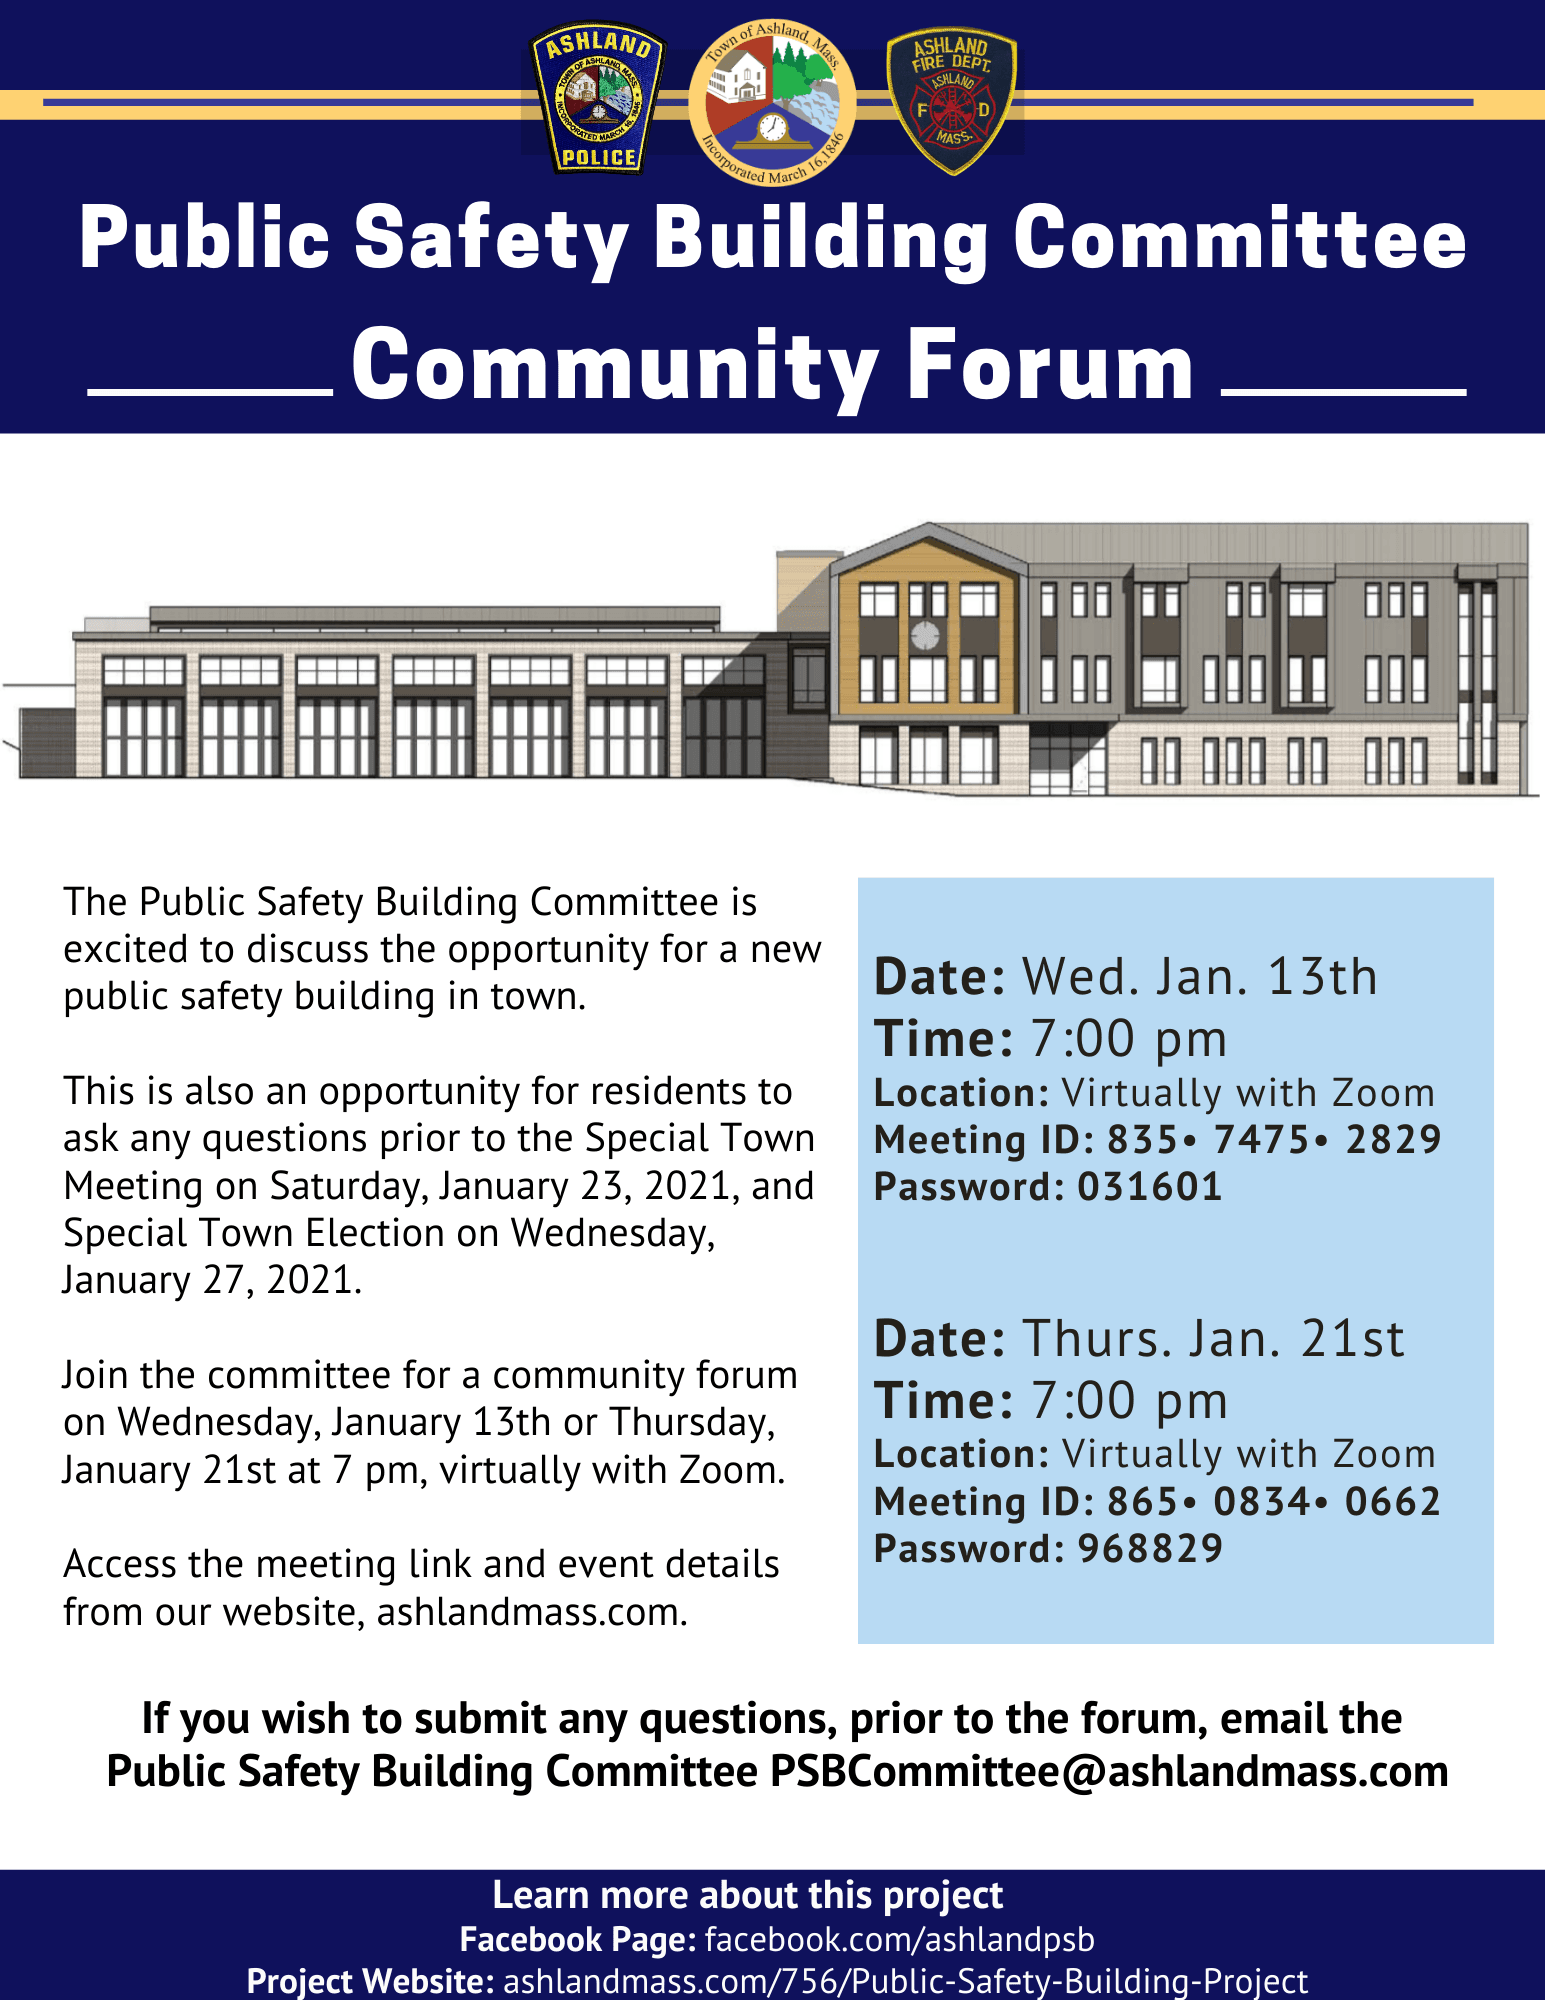 Public Safety Building Meeting Forum